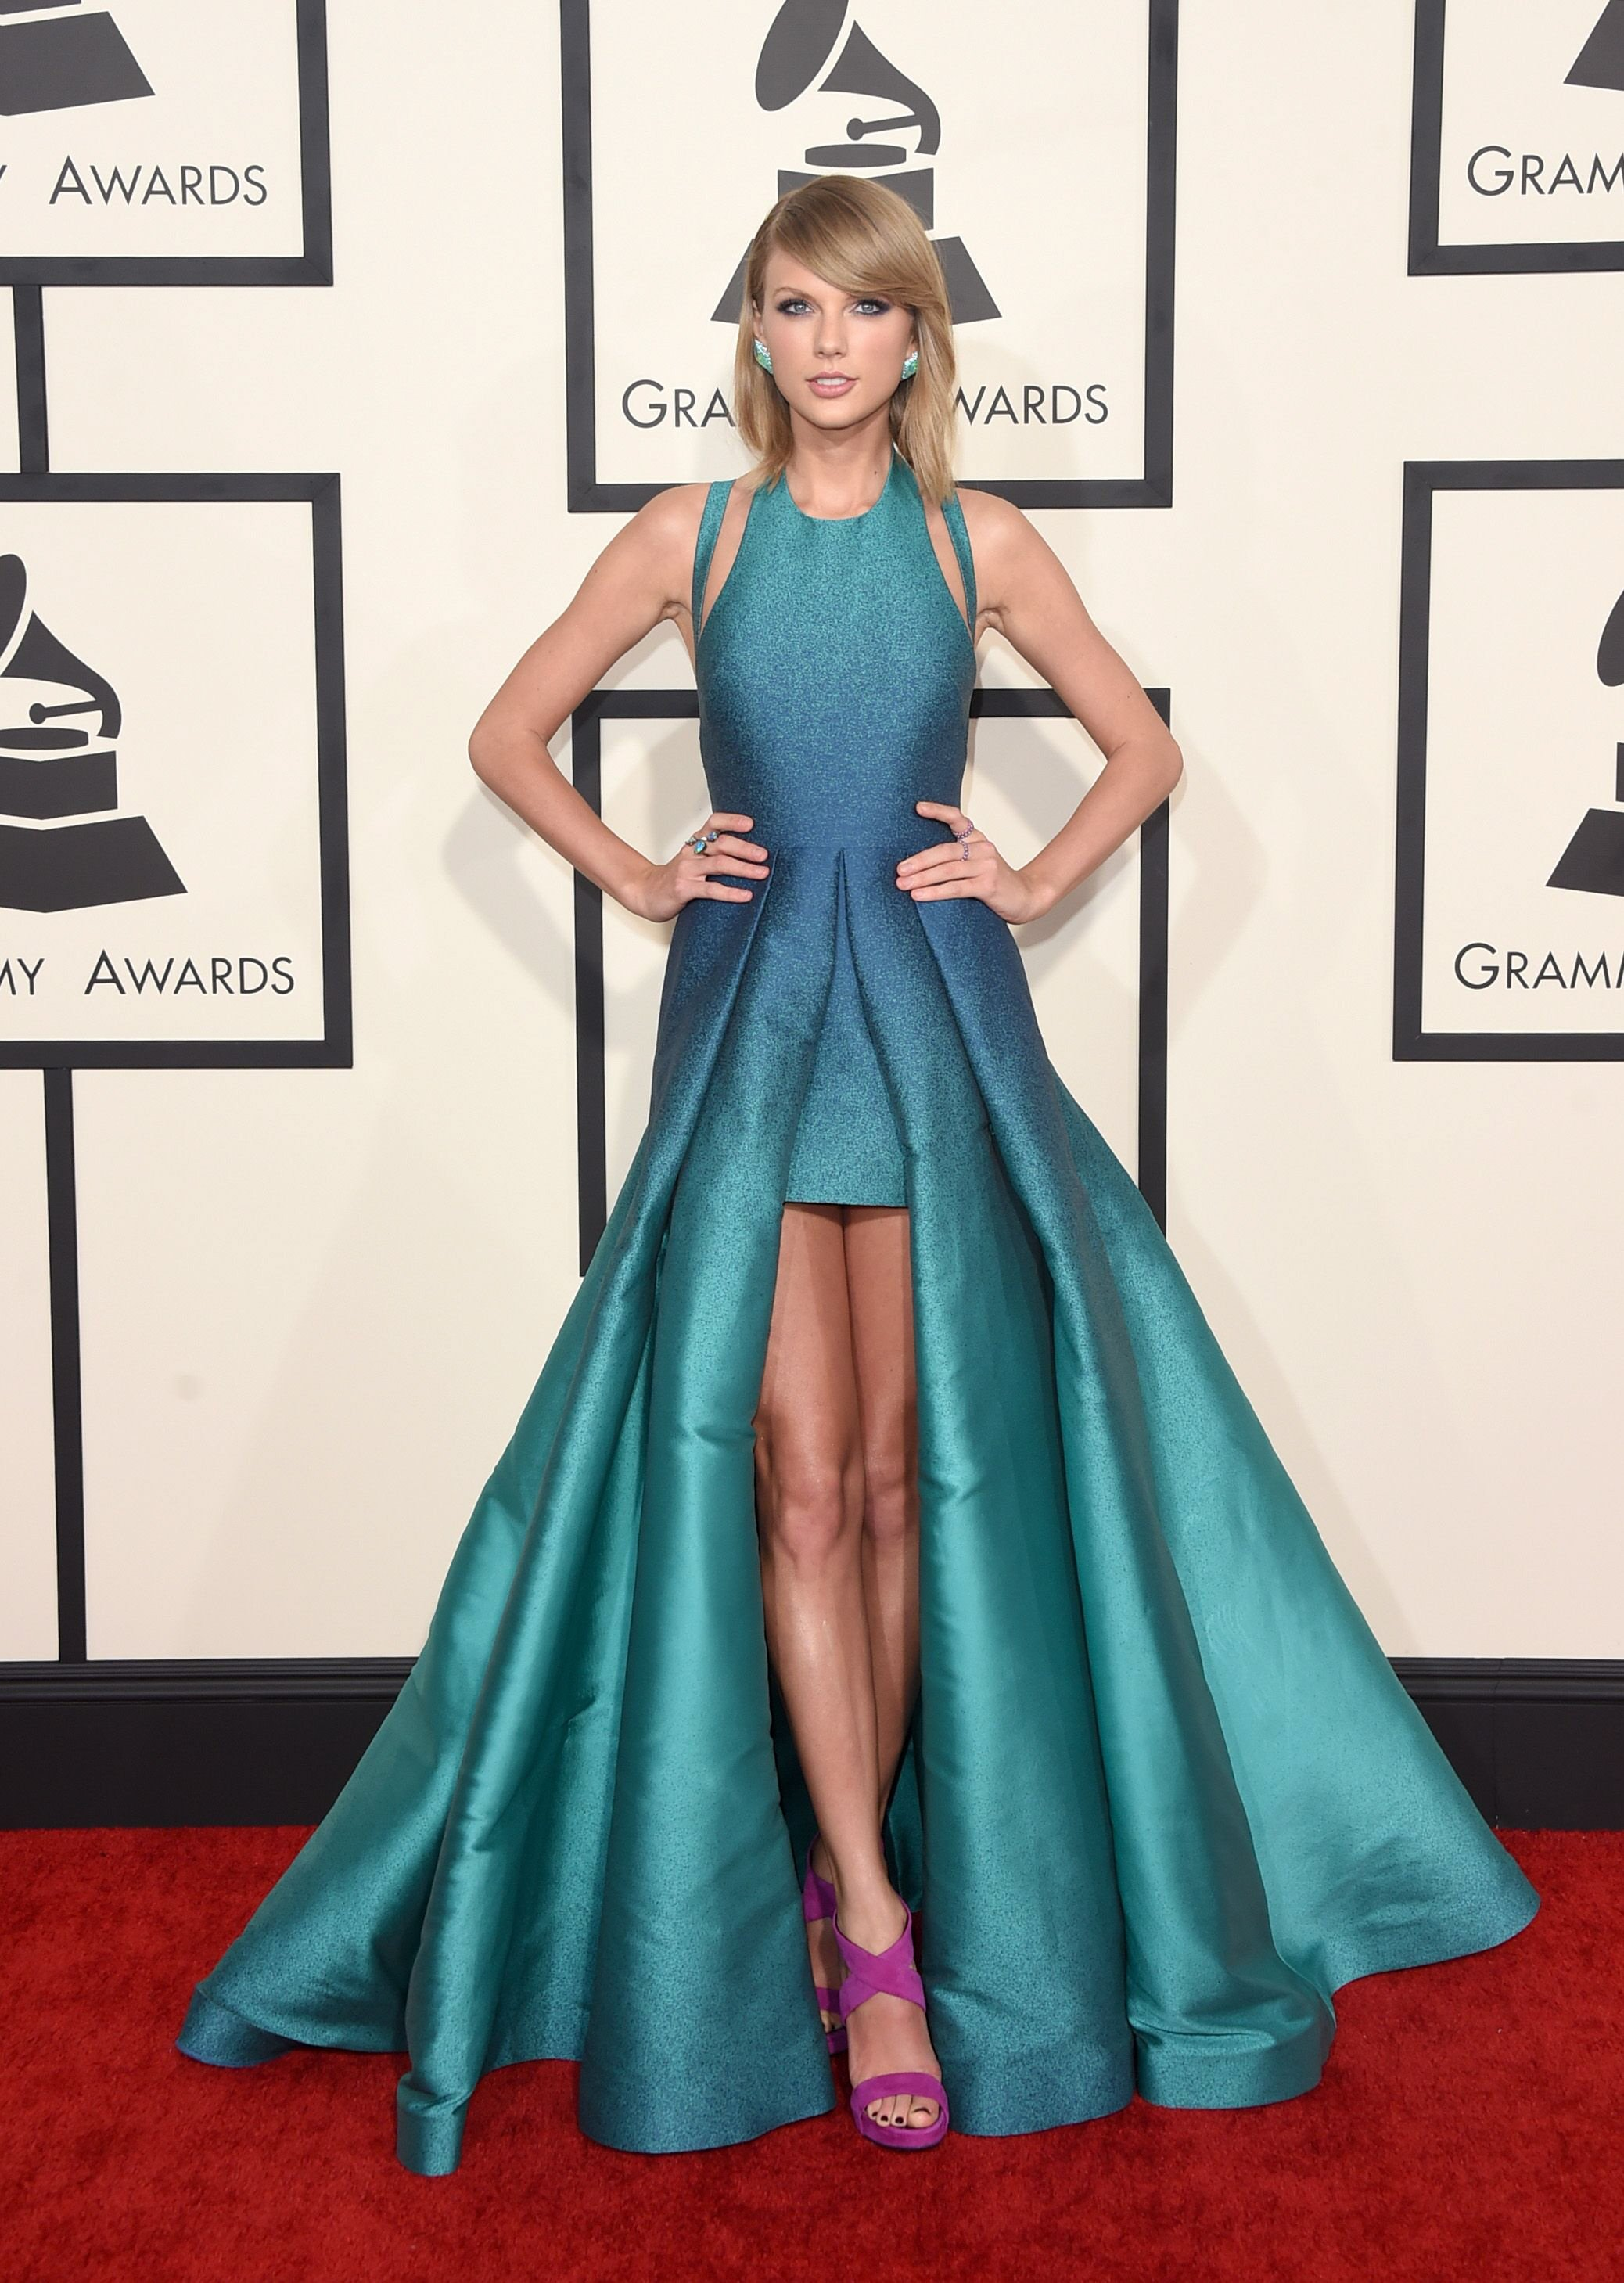 mega stars of the music world rocked daring outfits on the grammys red carpet photo afp